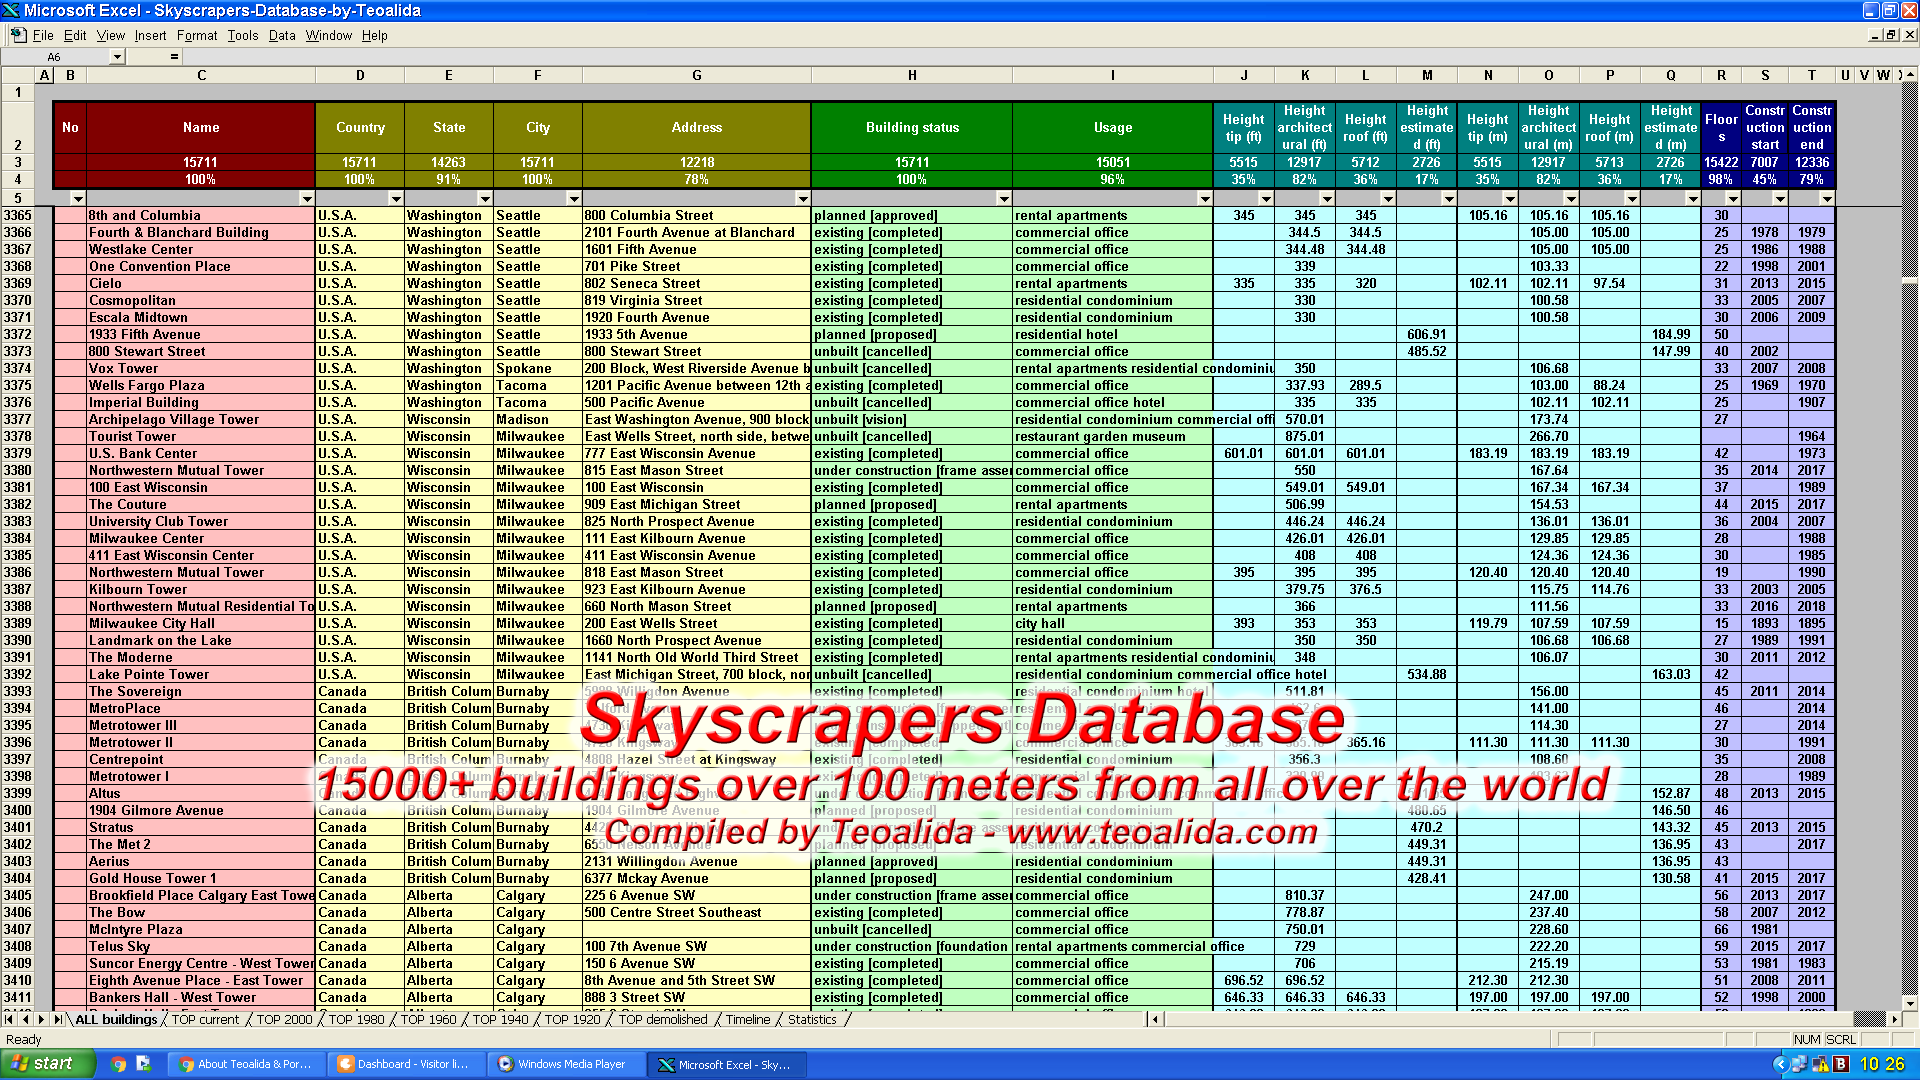 Skyscrapers database, tallest buildings in the world